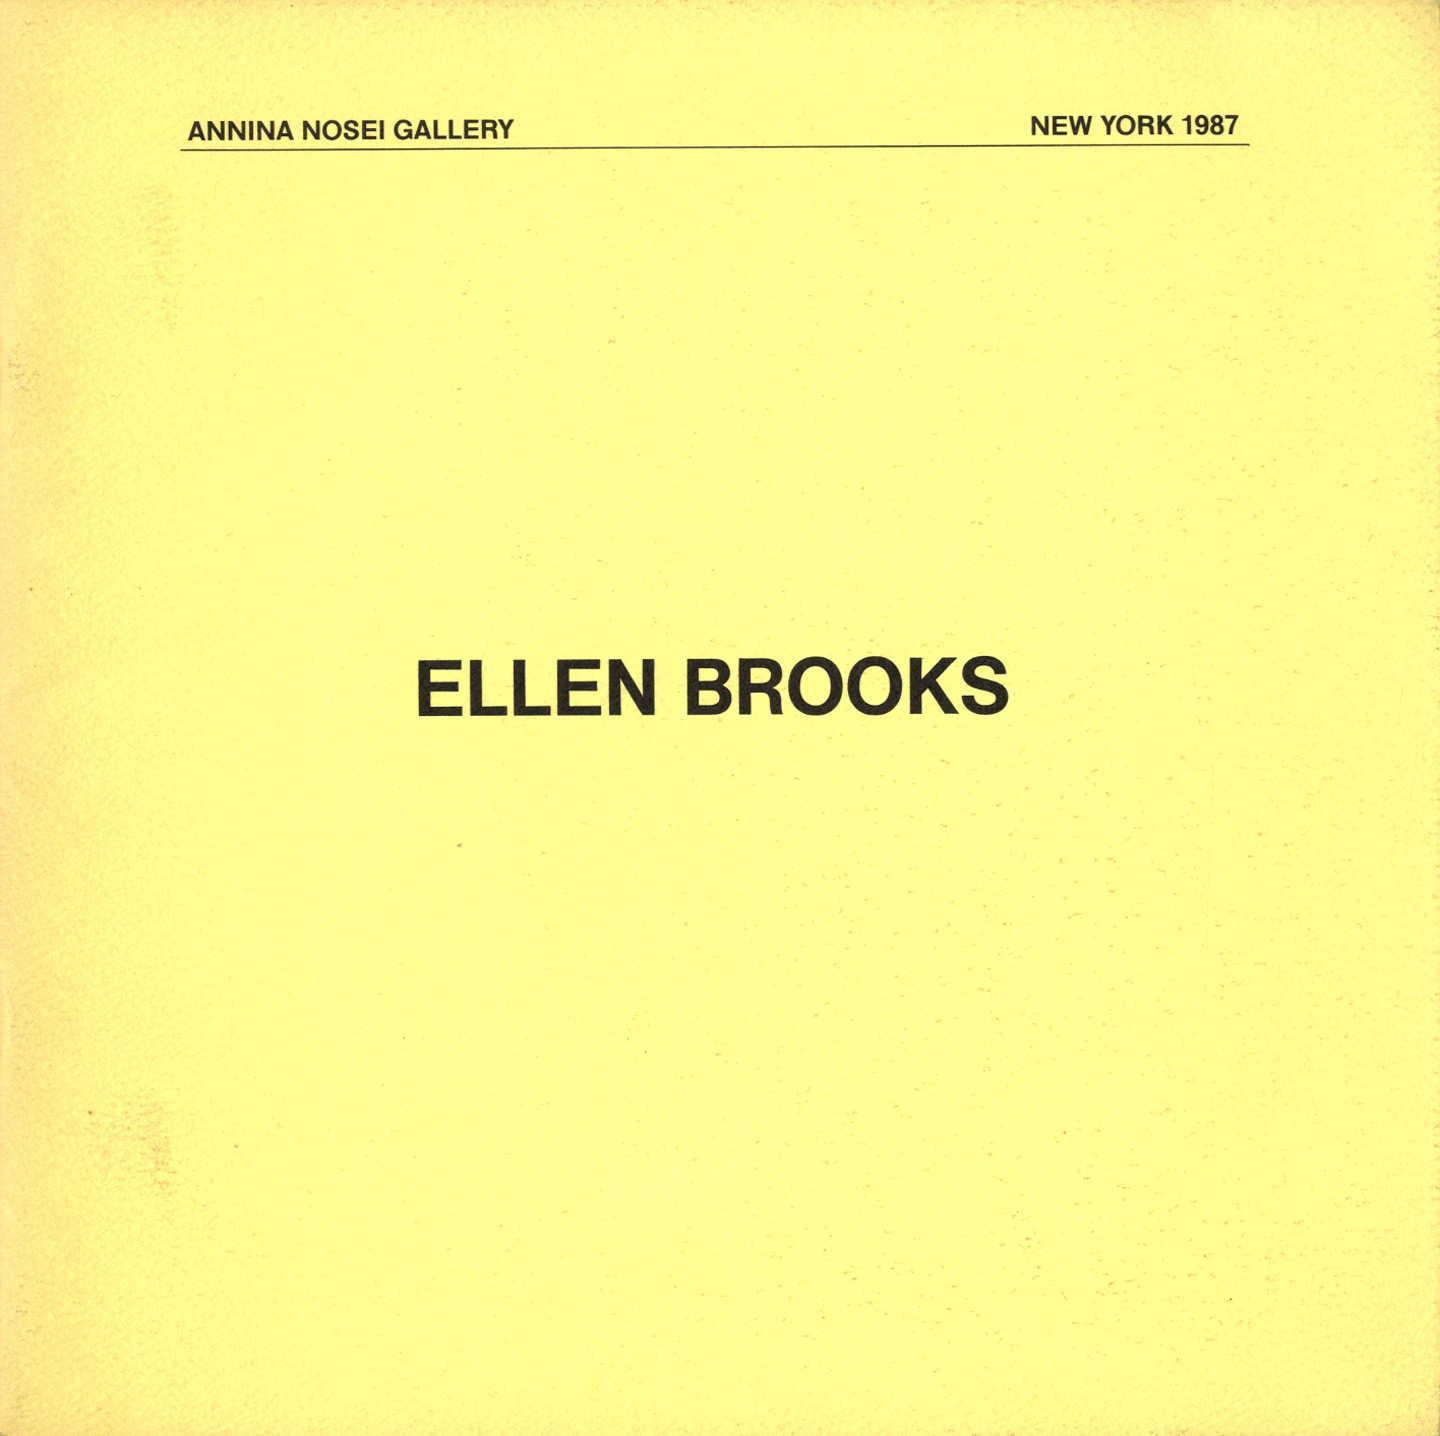 Ellen Brooks (Annina Nosei Gallery)